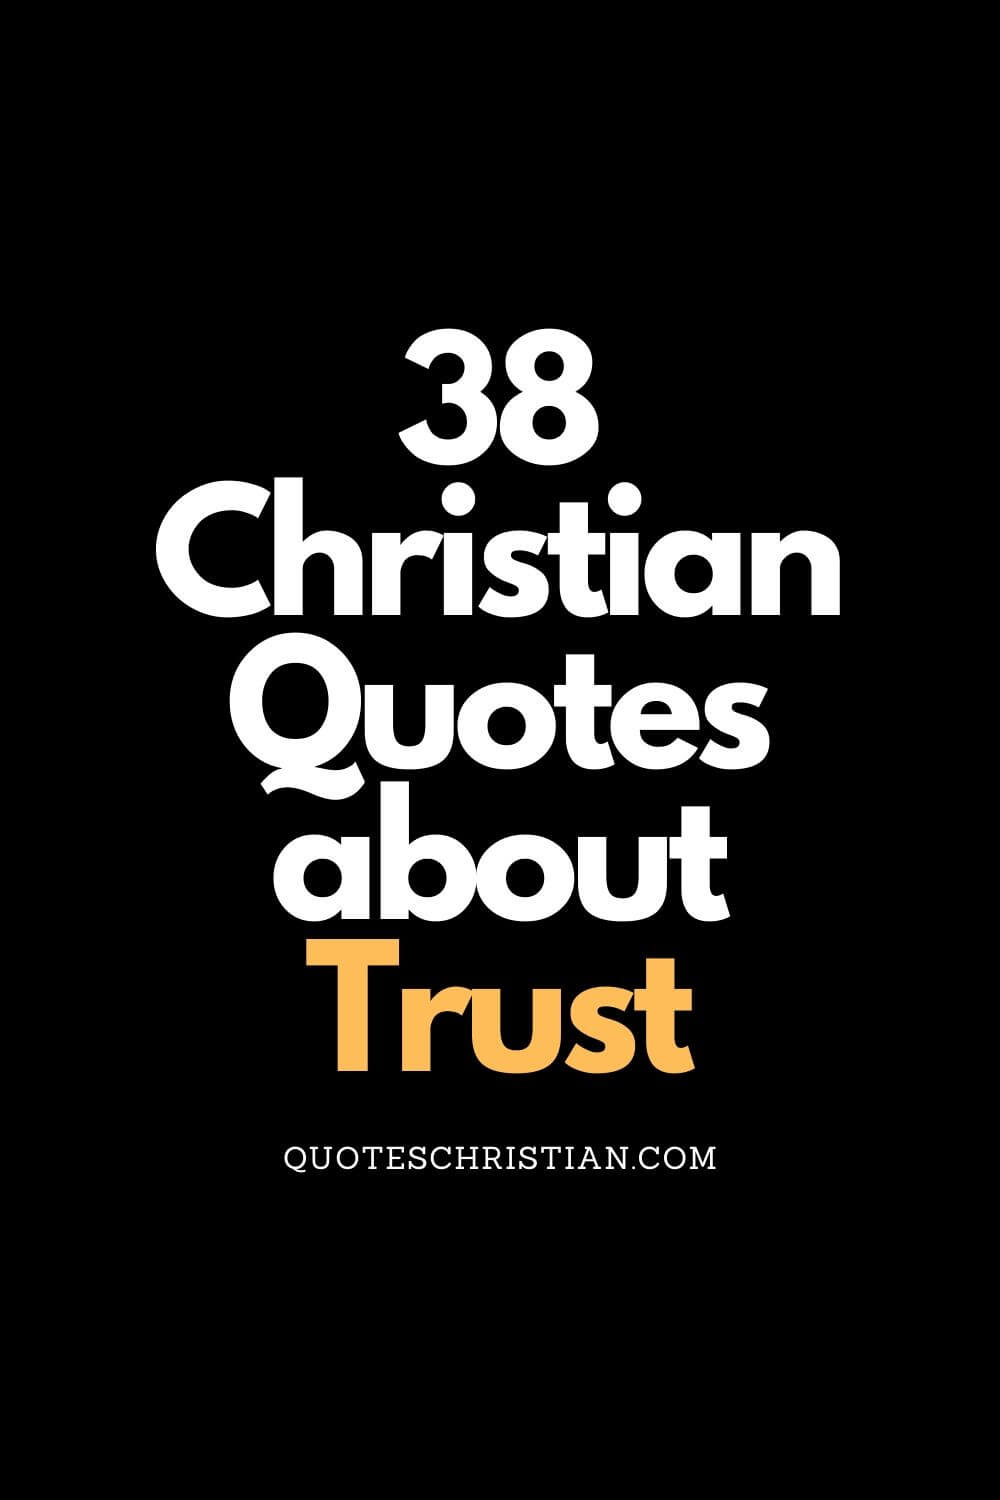 Be inspired by these uplifting Christian quotes about trust.